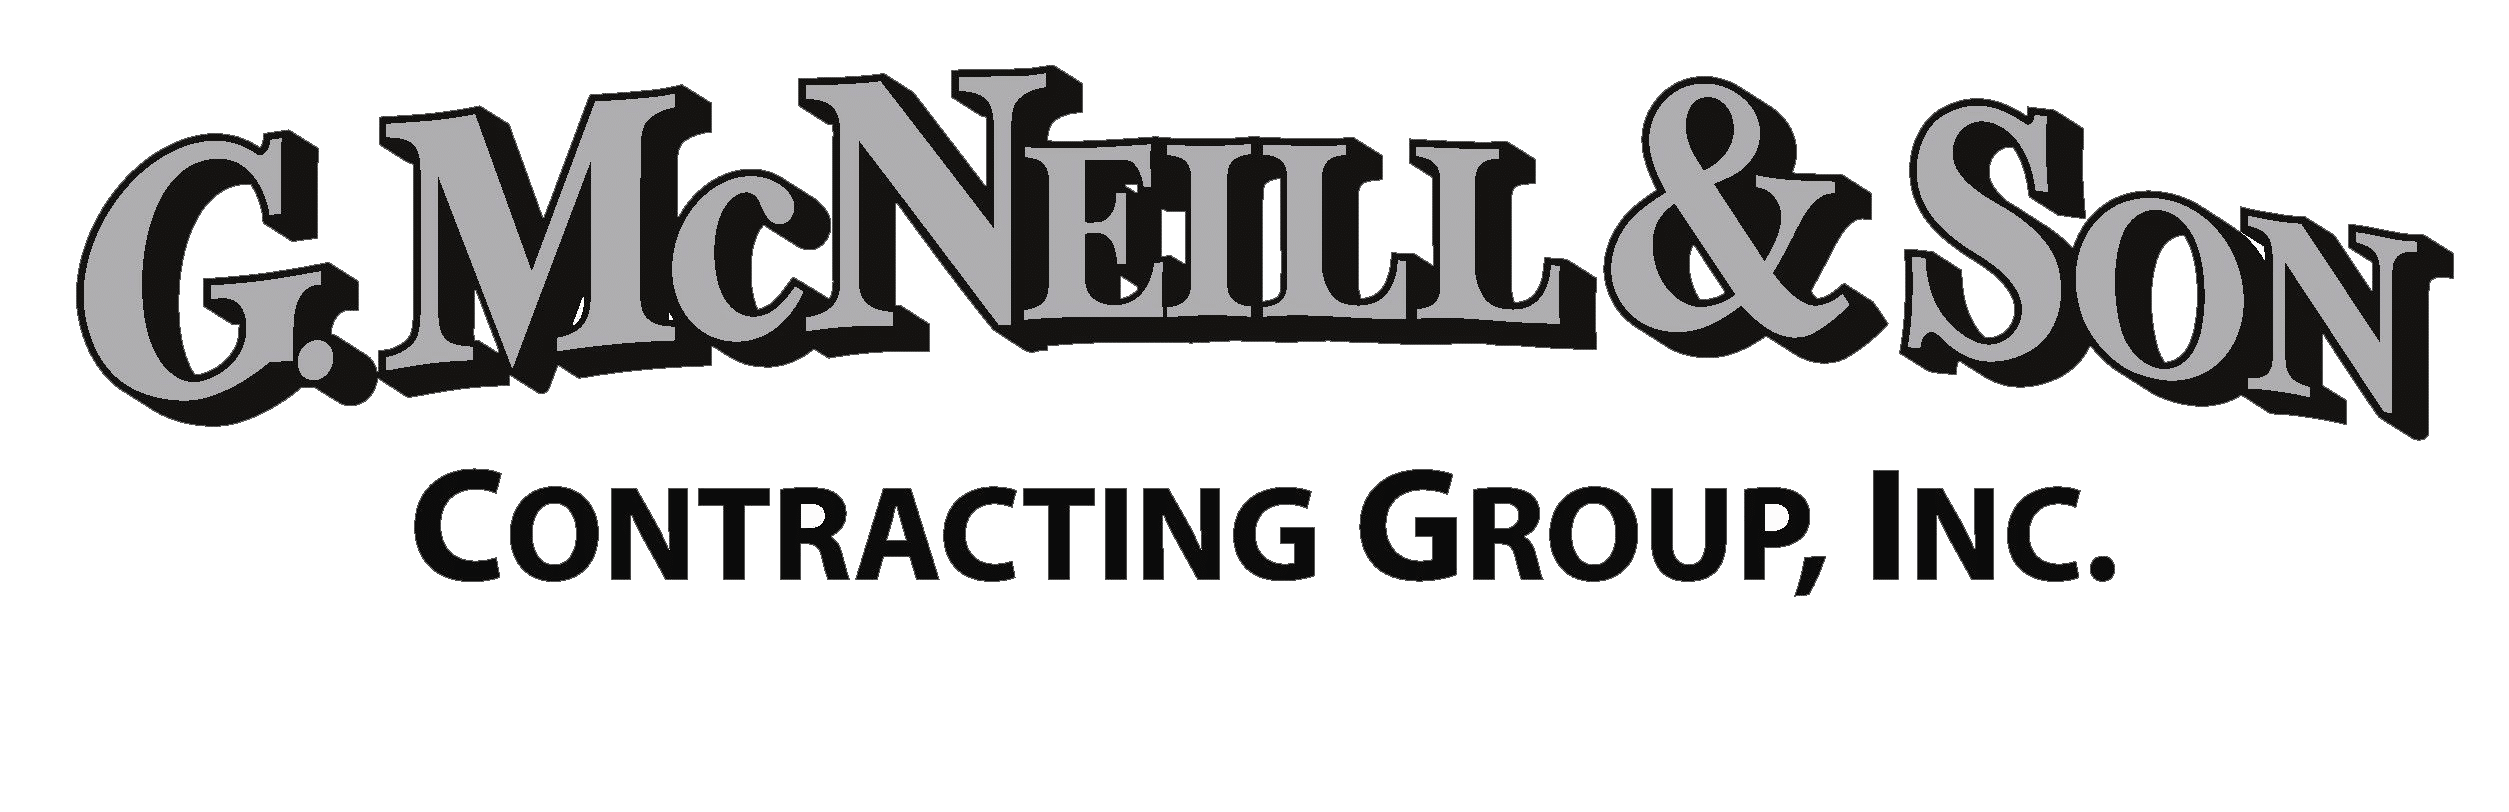 G. McNeill & Son Contracting Group, Inc. logo